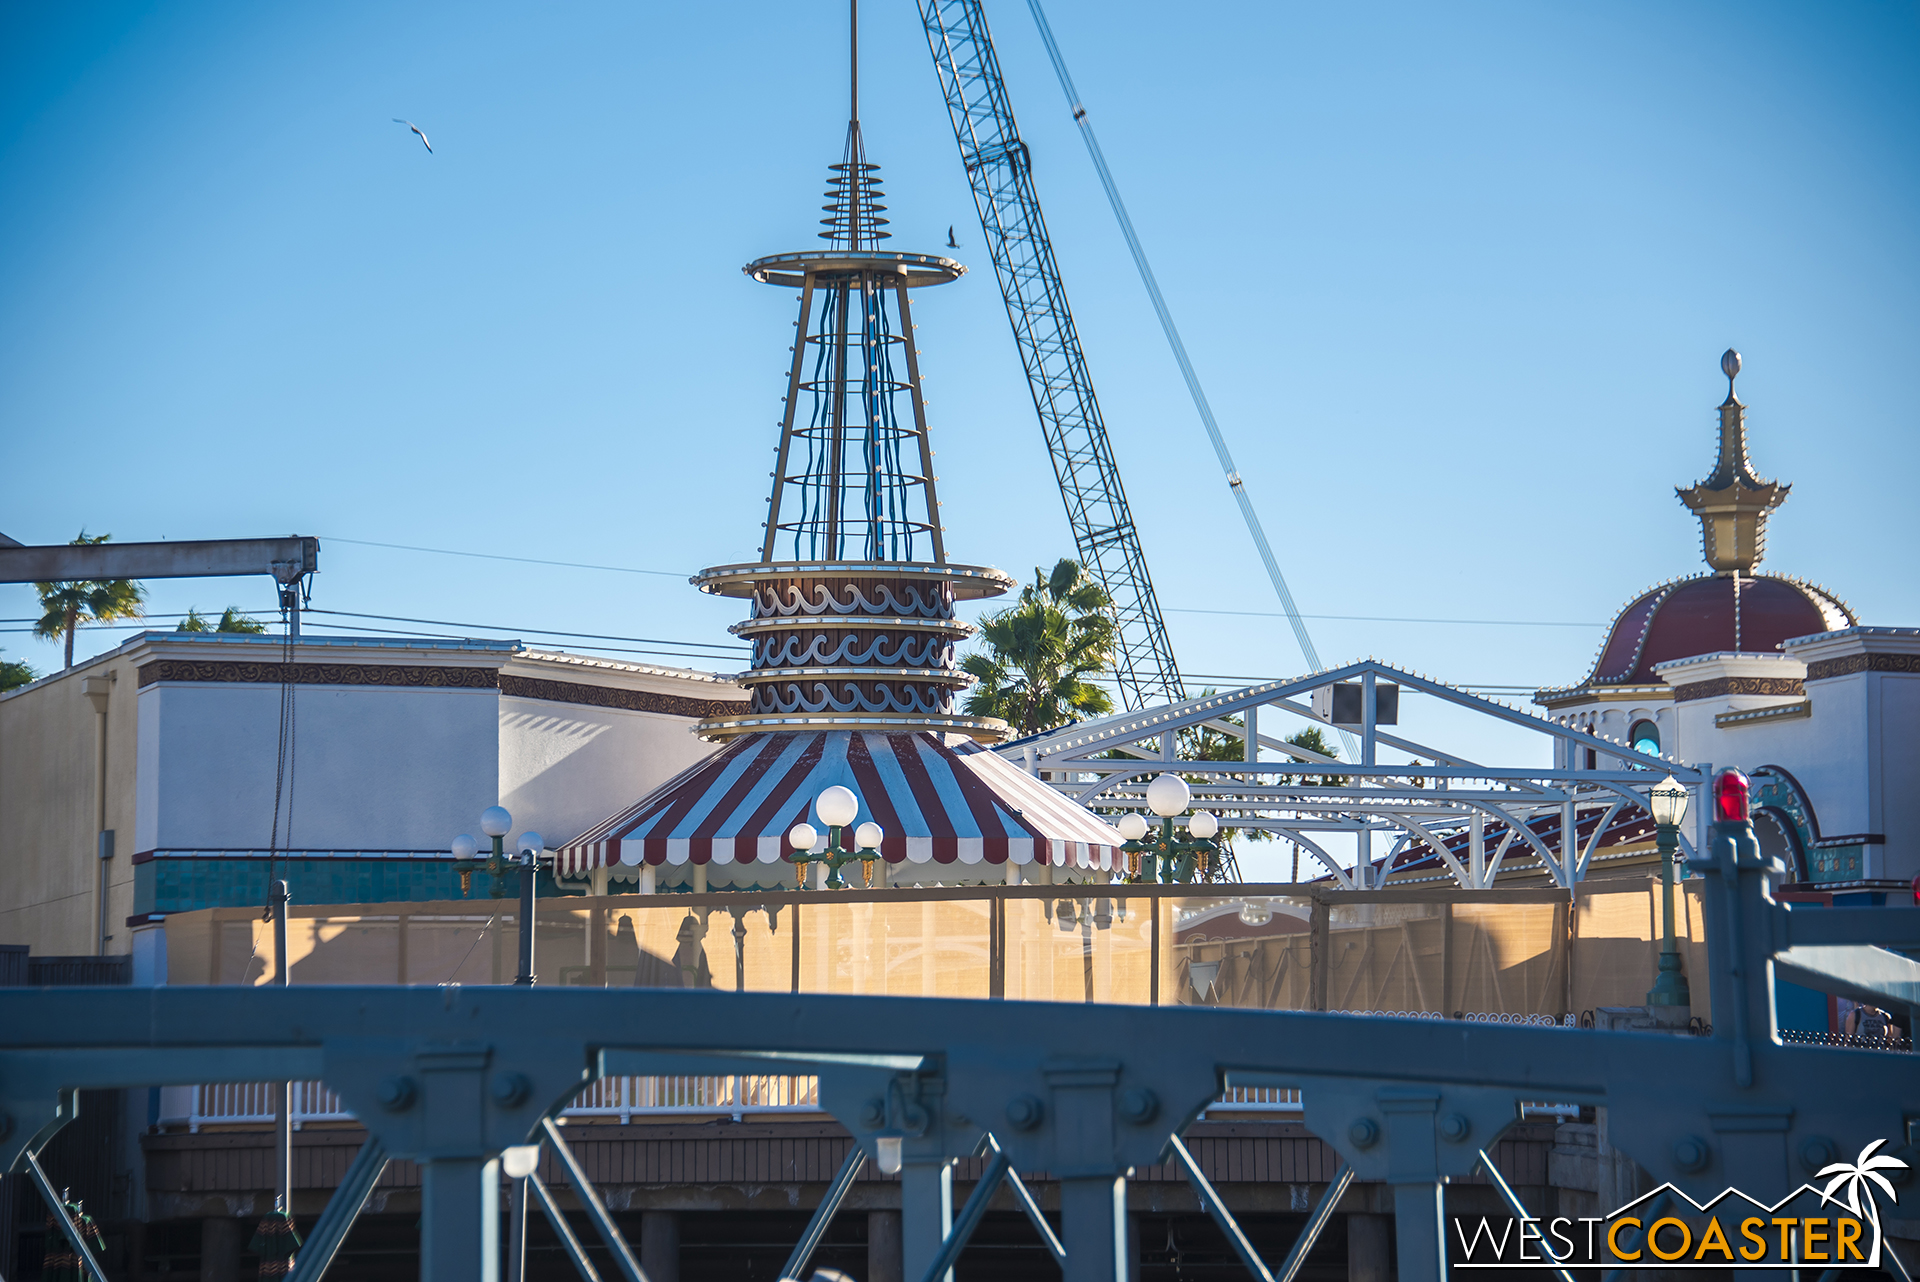 Work walls and screens are up around the stores across from Ariel's Grotto.